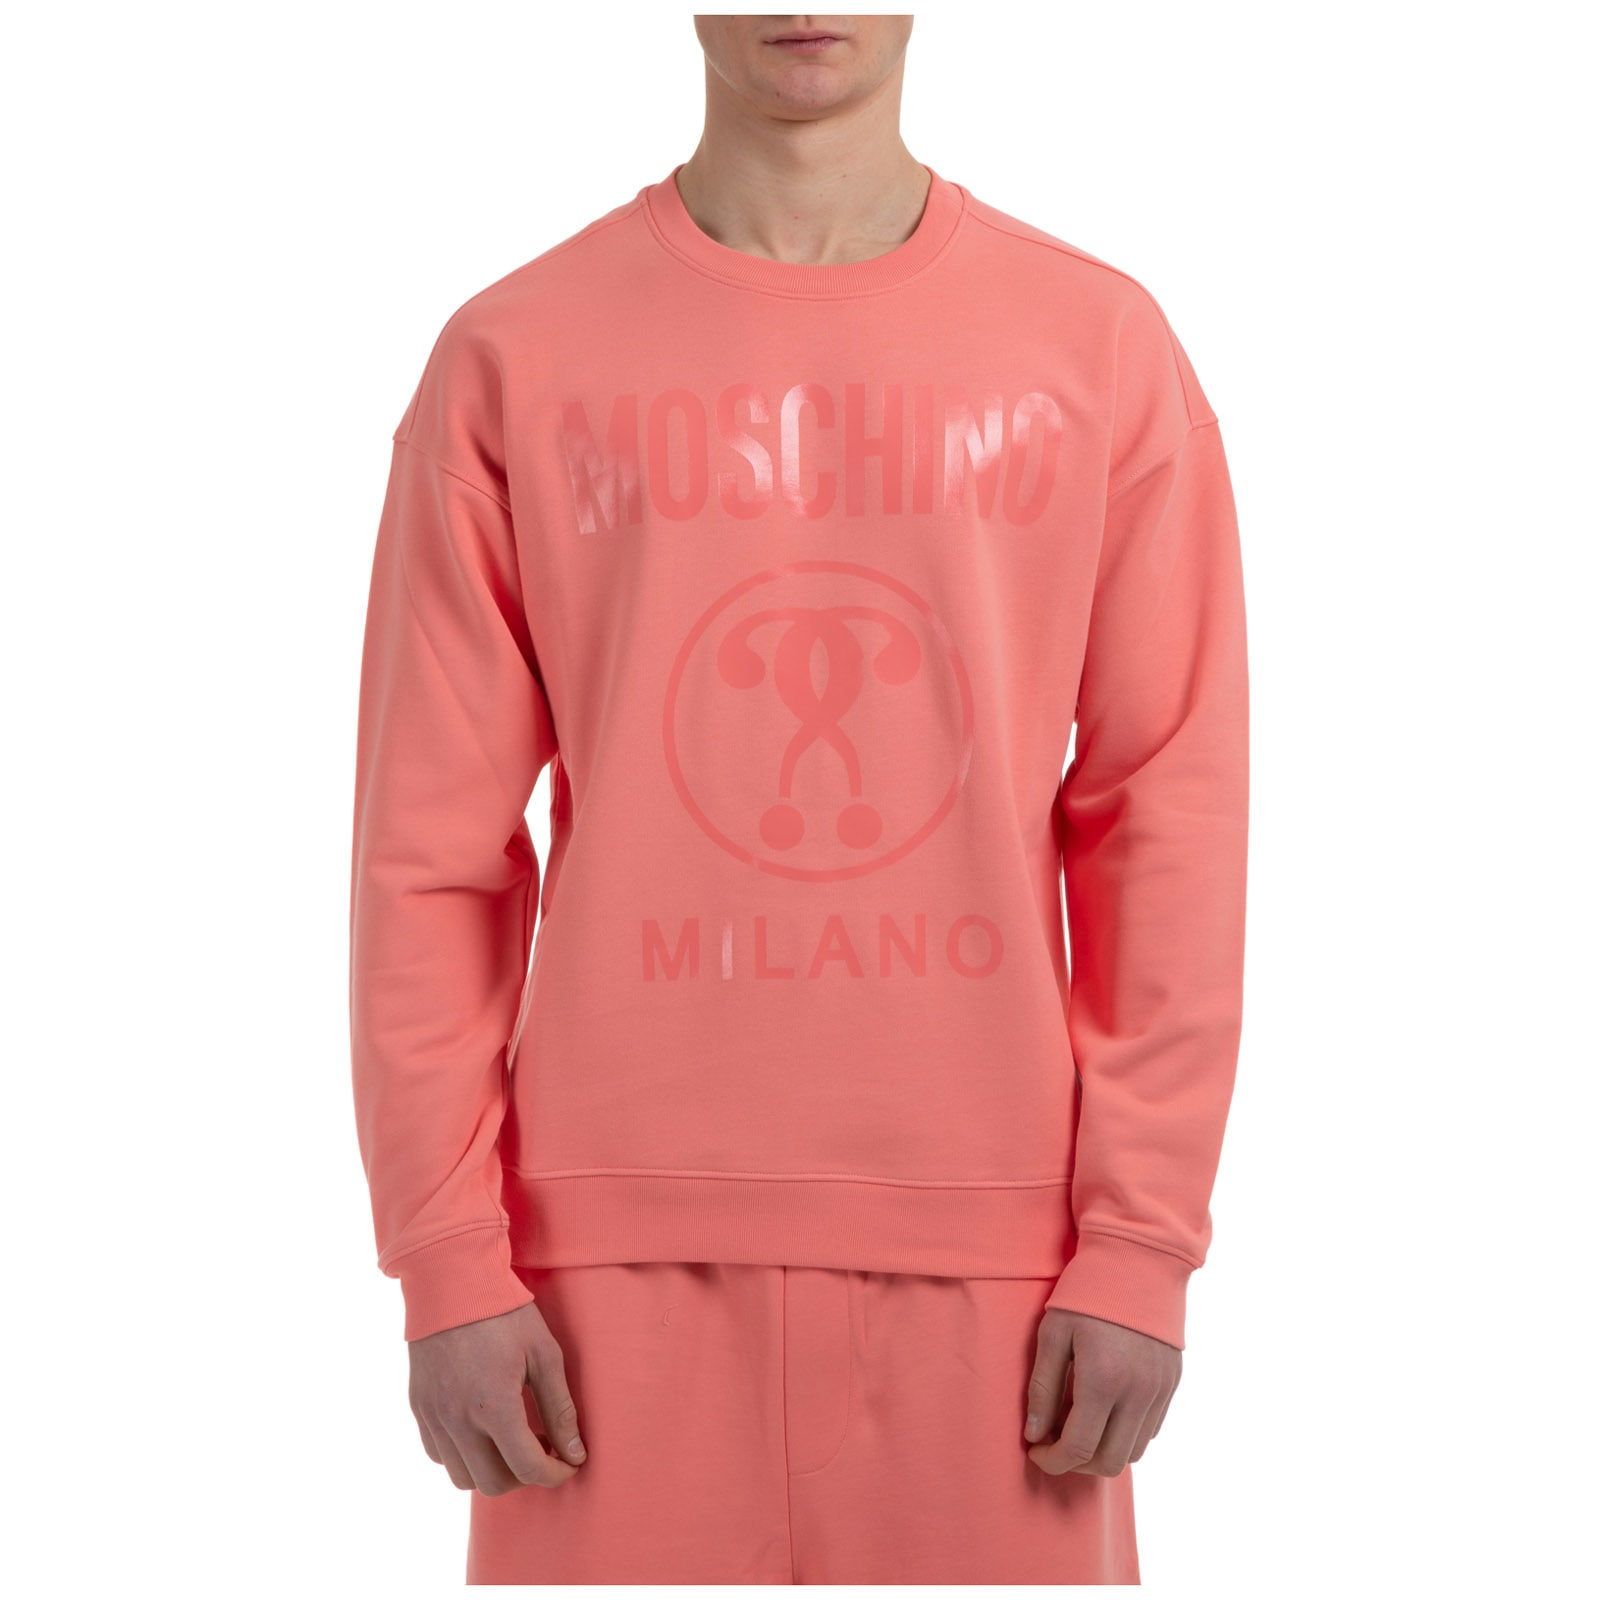 Moschino DOUBLE QUESTION MARK SWEATSHIRT